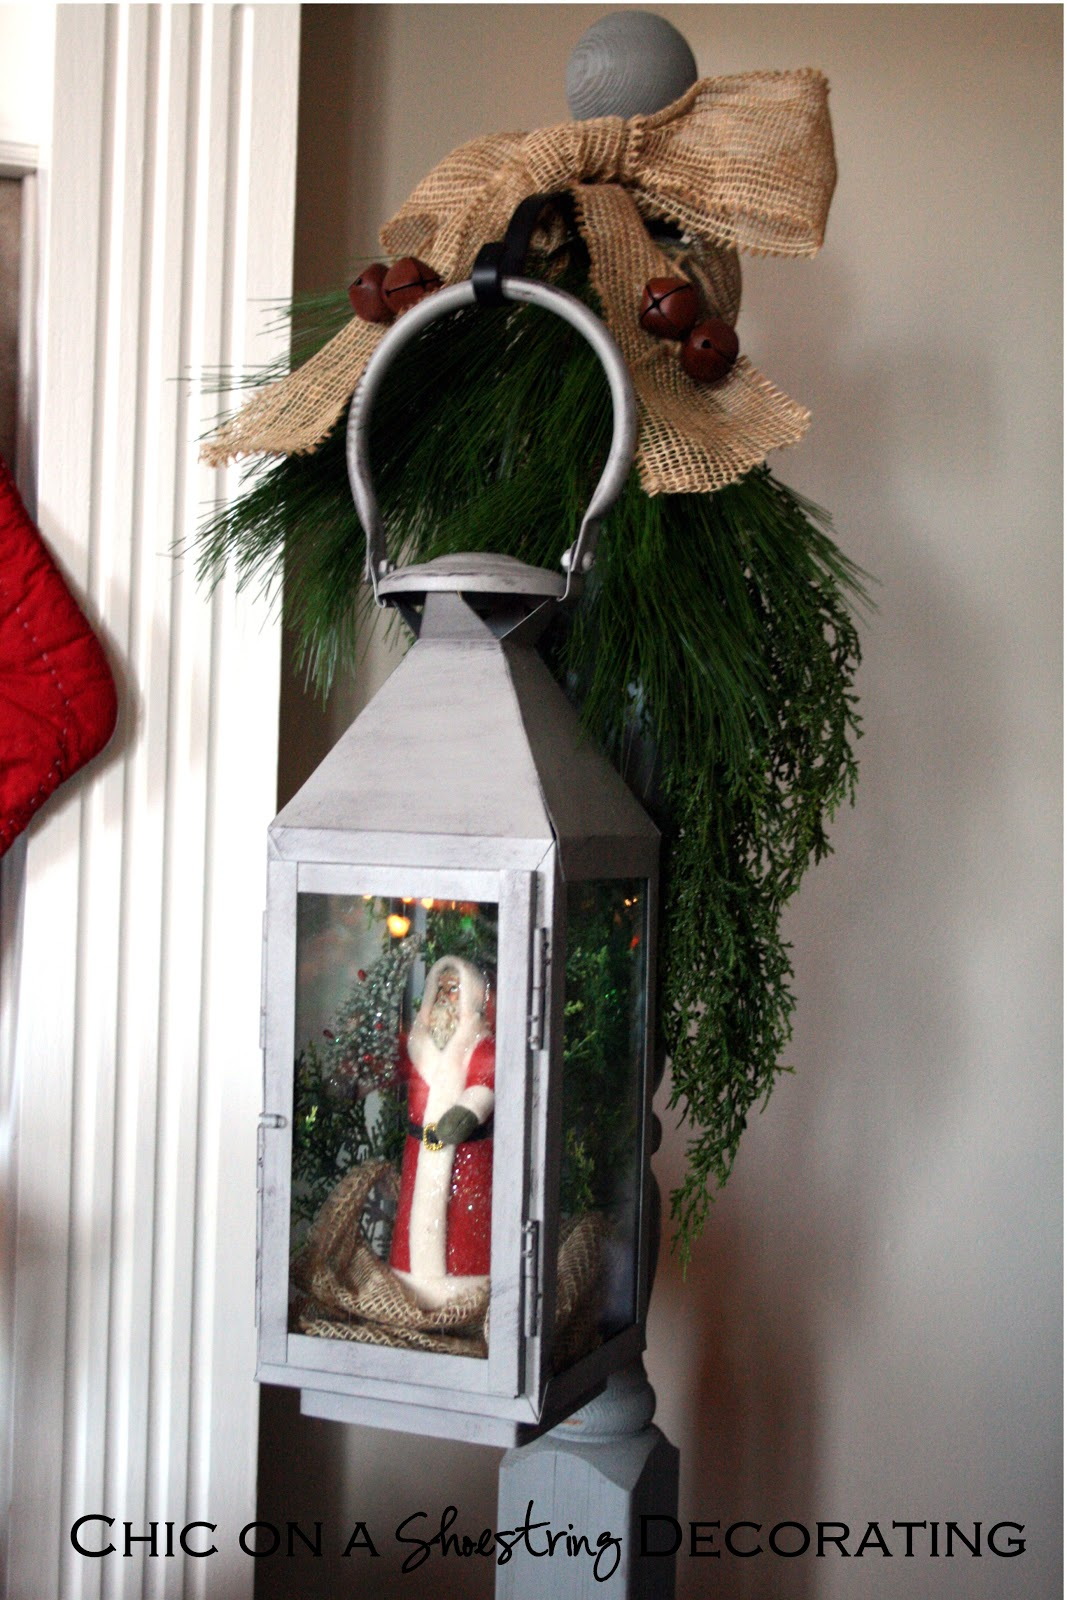 Chic on a shoestring decorating rustic christmas mantel for Images of lanterns decorated for christmas